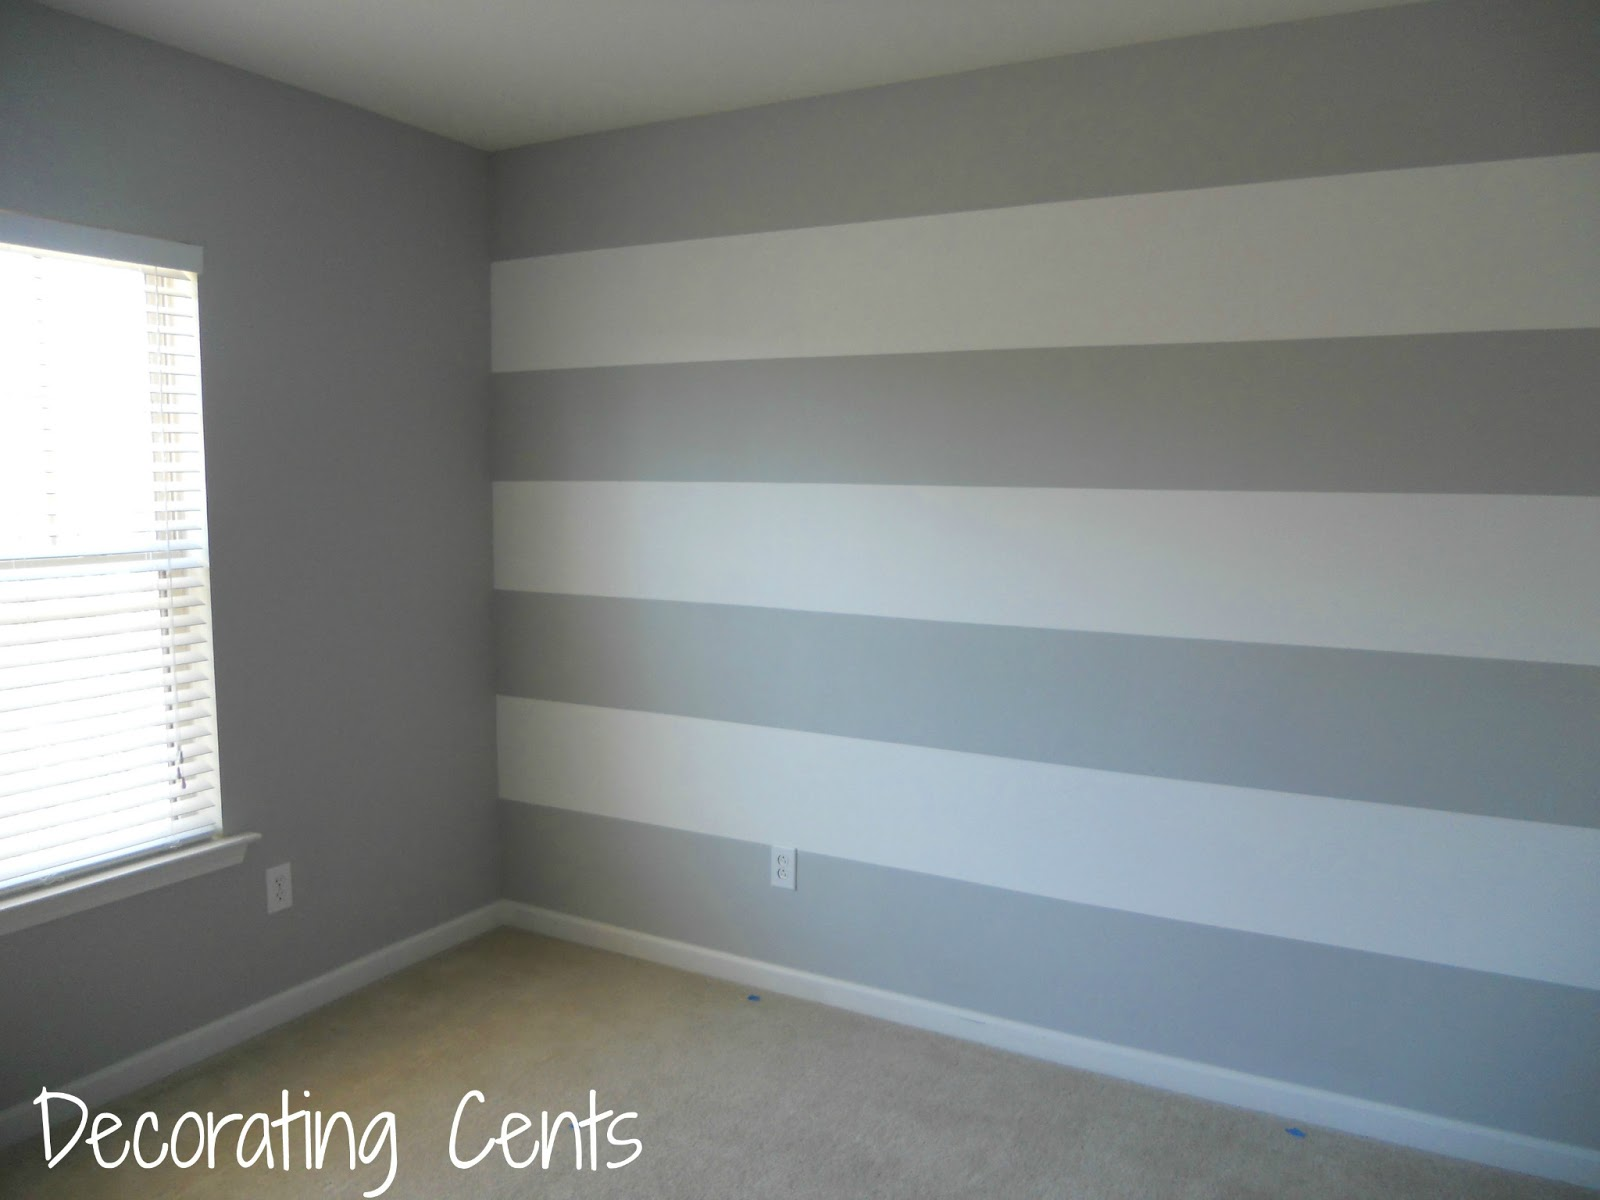 Decorating cents painting a striped wall for Bedroom stripe paint ideas